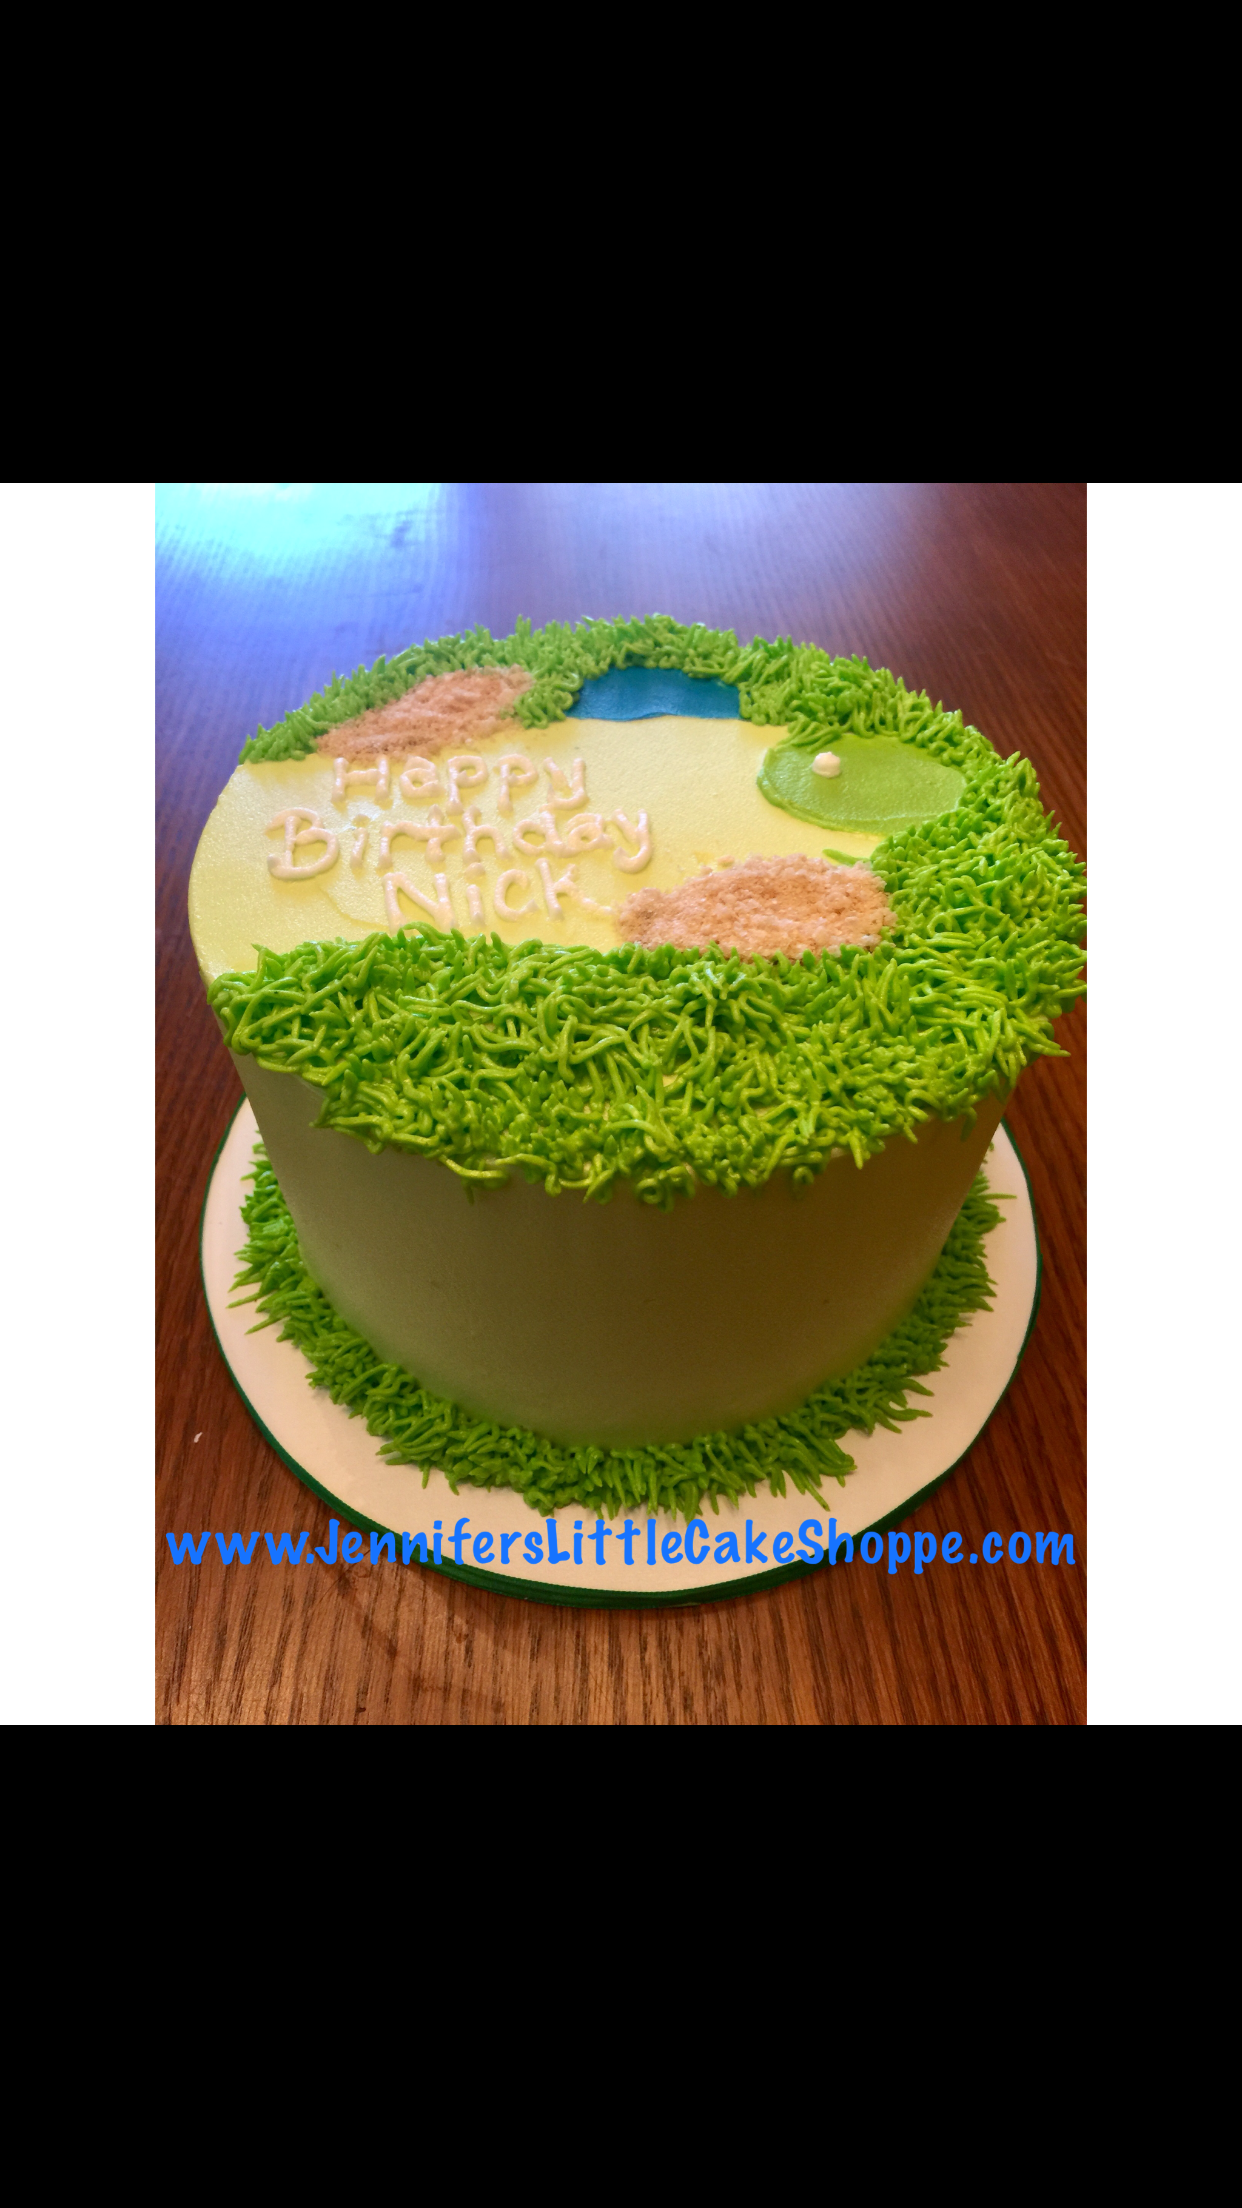 Golf Birthday Cake In Buttercream Icing From Jennifers Little Cake